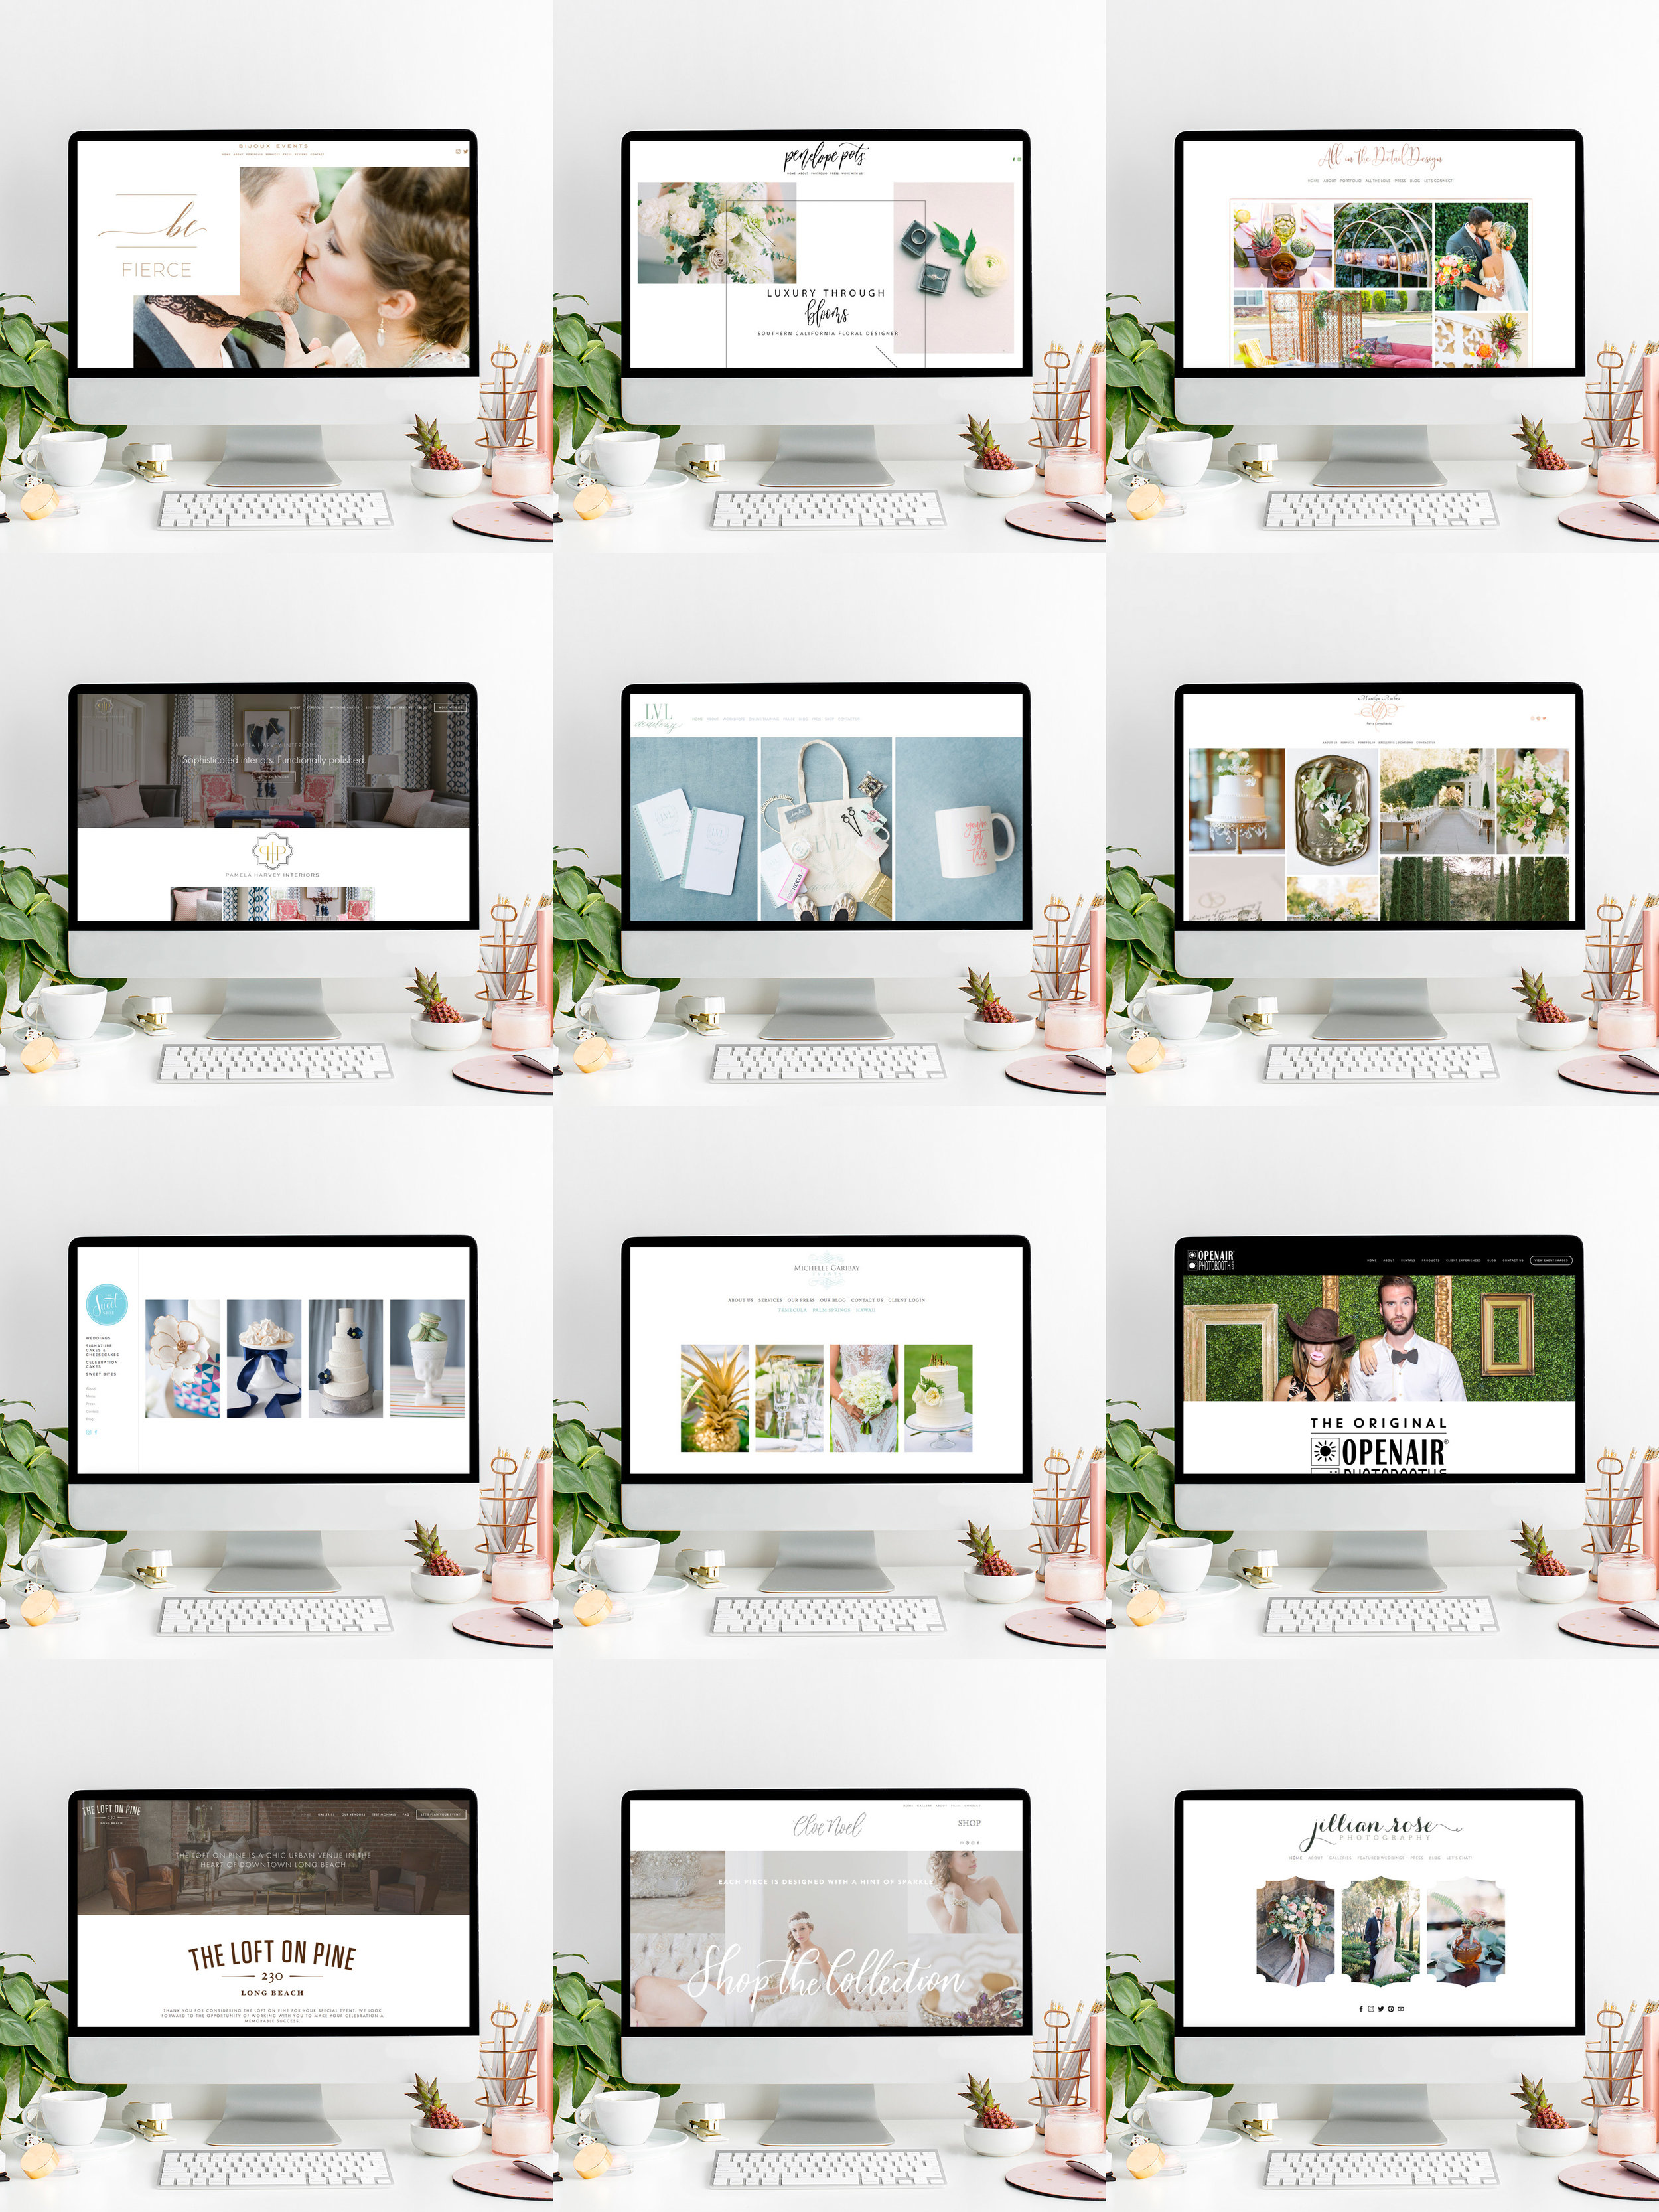 Squarespace Website Designer For Wedding Industry Professionals and Creative Business Owners | The Editor's Touch